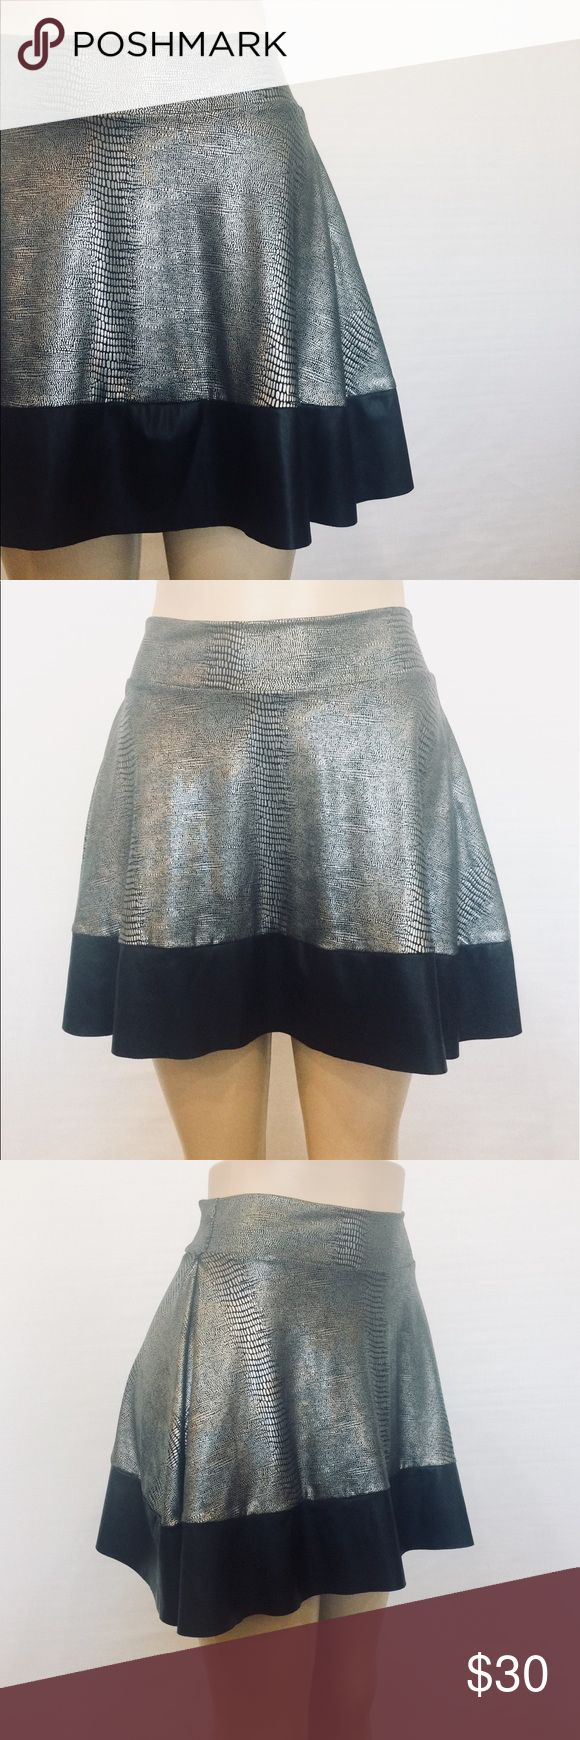 "⭐️ Metallic Snake Print Knit Skater Mini Skirt Grey, Pewter and Black Snake Print. Pull on waistband, fit and flair mini. Liquid knit, supper stretchy. 85% Nylon 15% Lycra Machine Washable 23"" Waist 72"" Sweep 16"" Overall Length Skirts Circle & Skater"